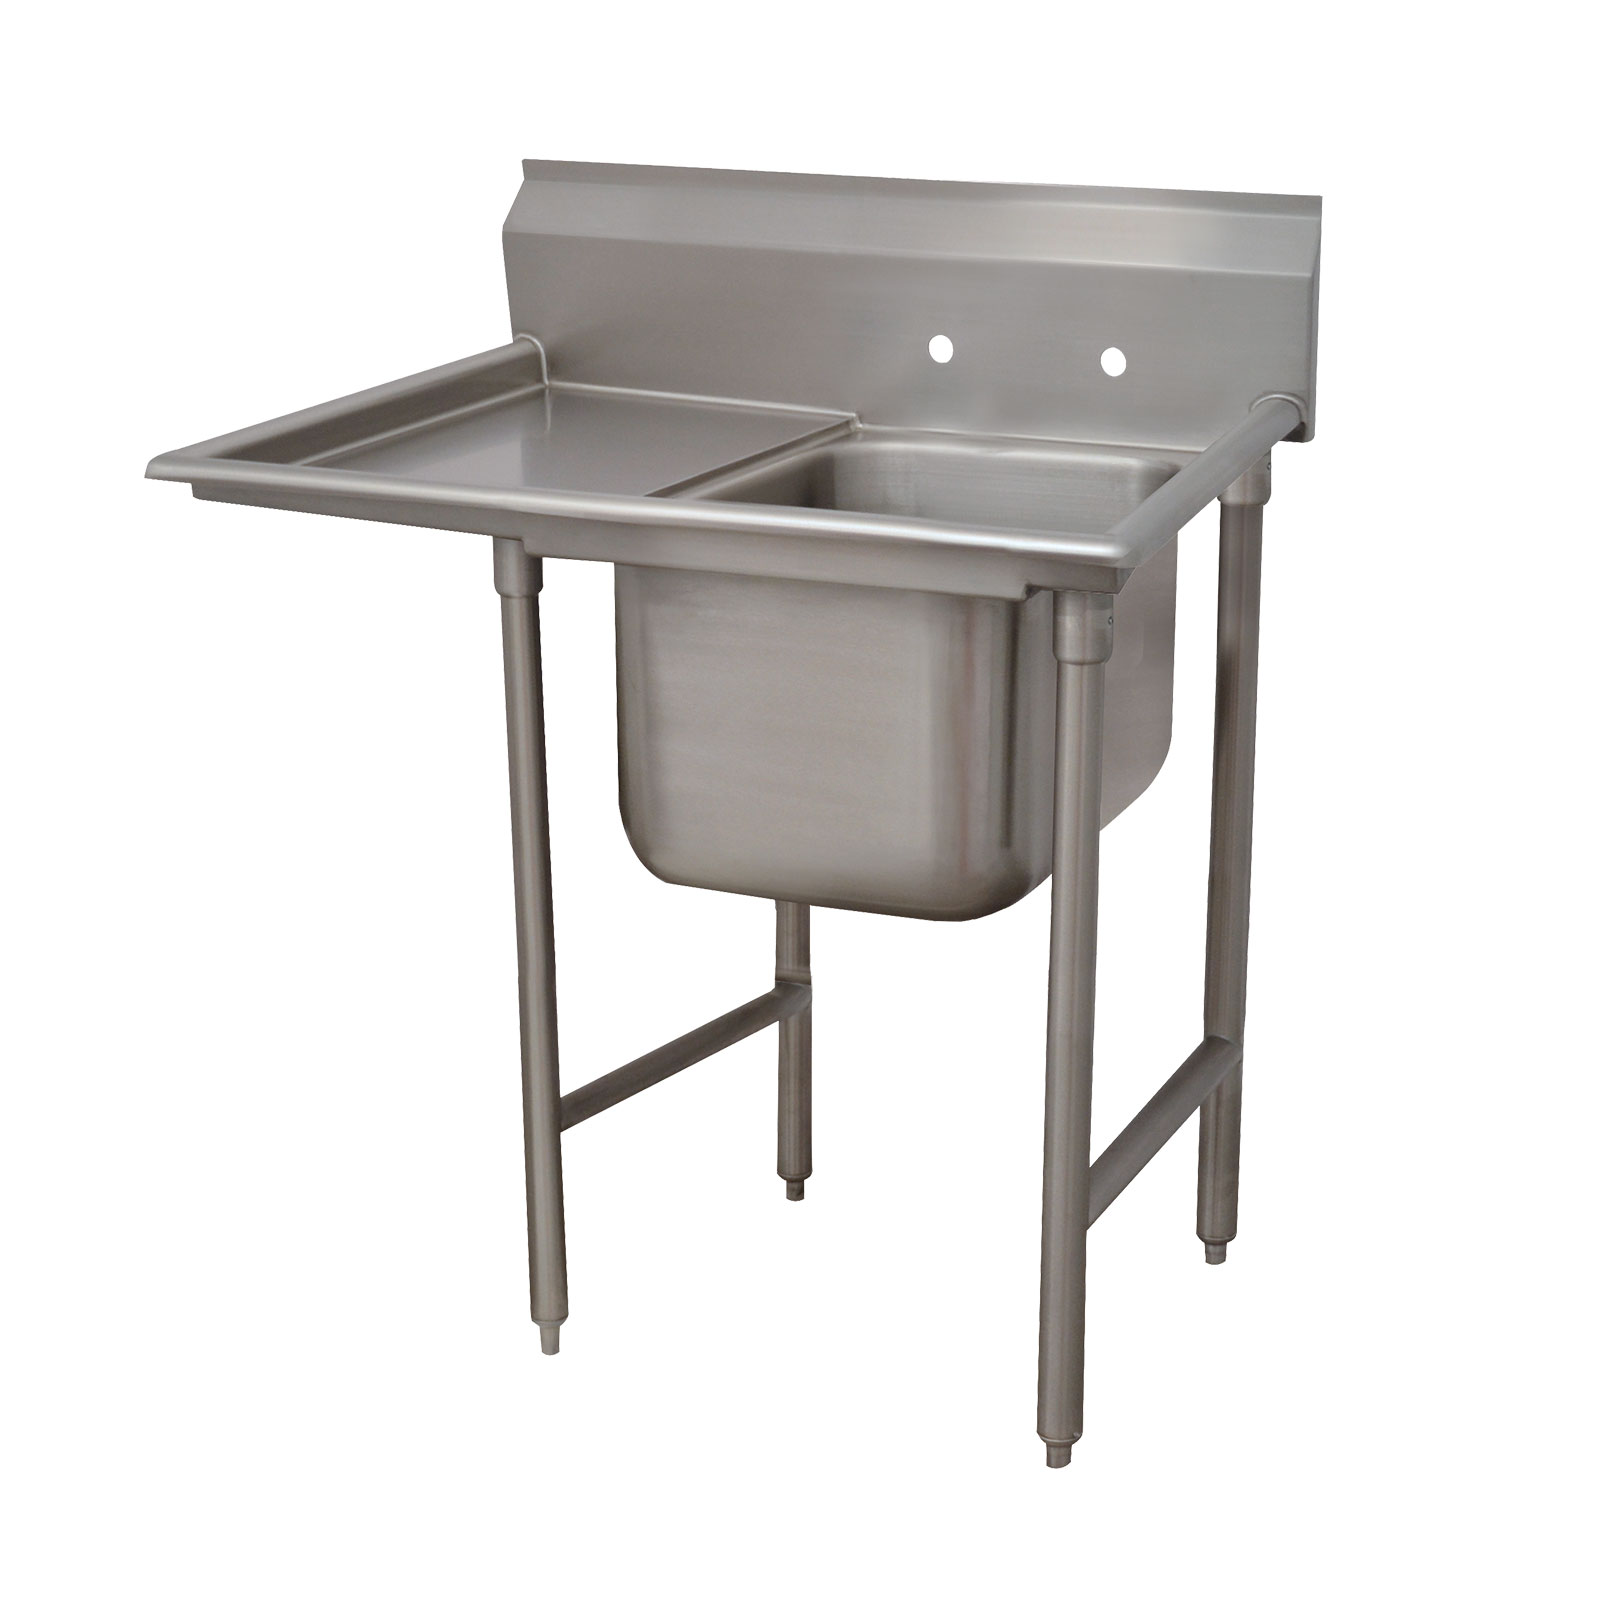 Advance Tabco 9-61-18-24L sink, (1) one compartment